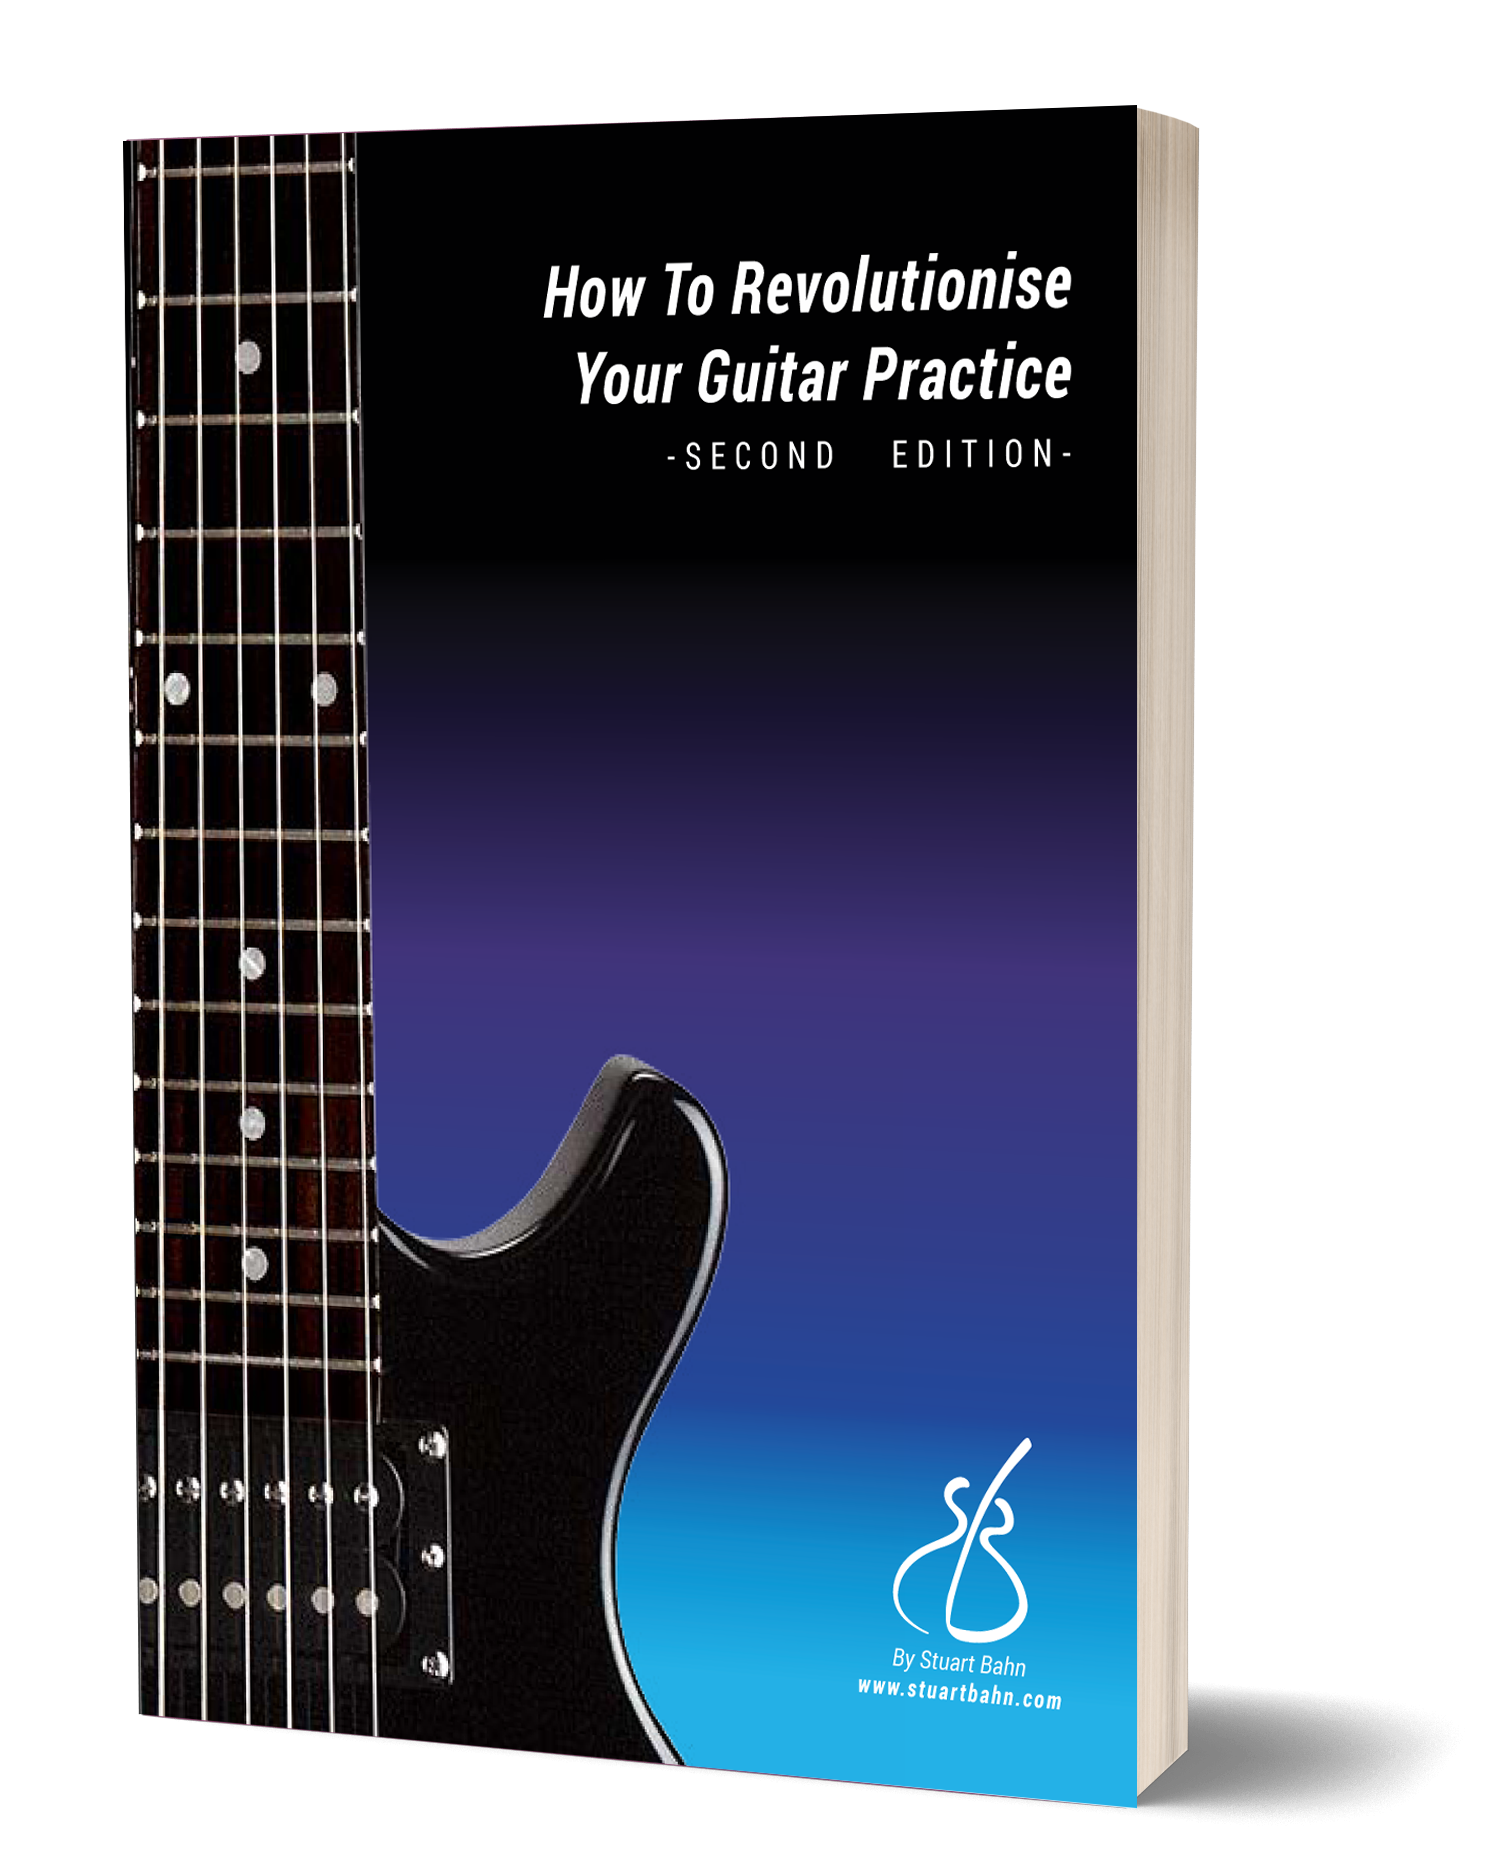 Guitar practice ebook